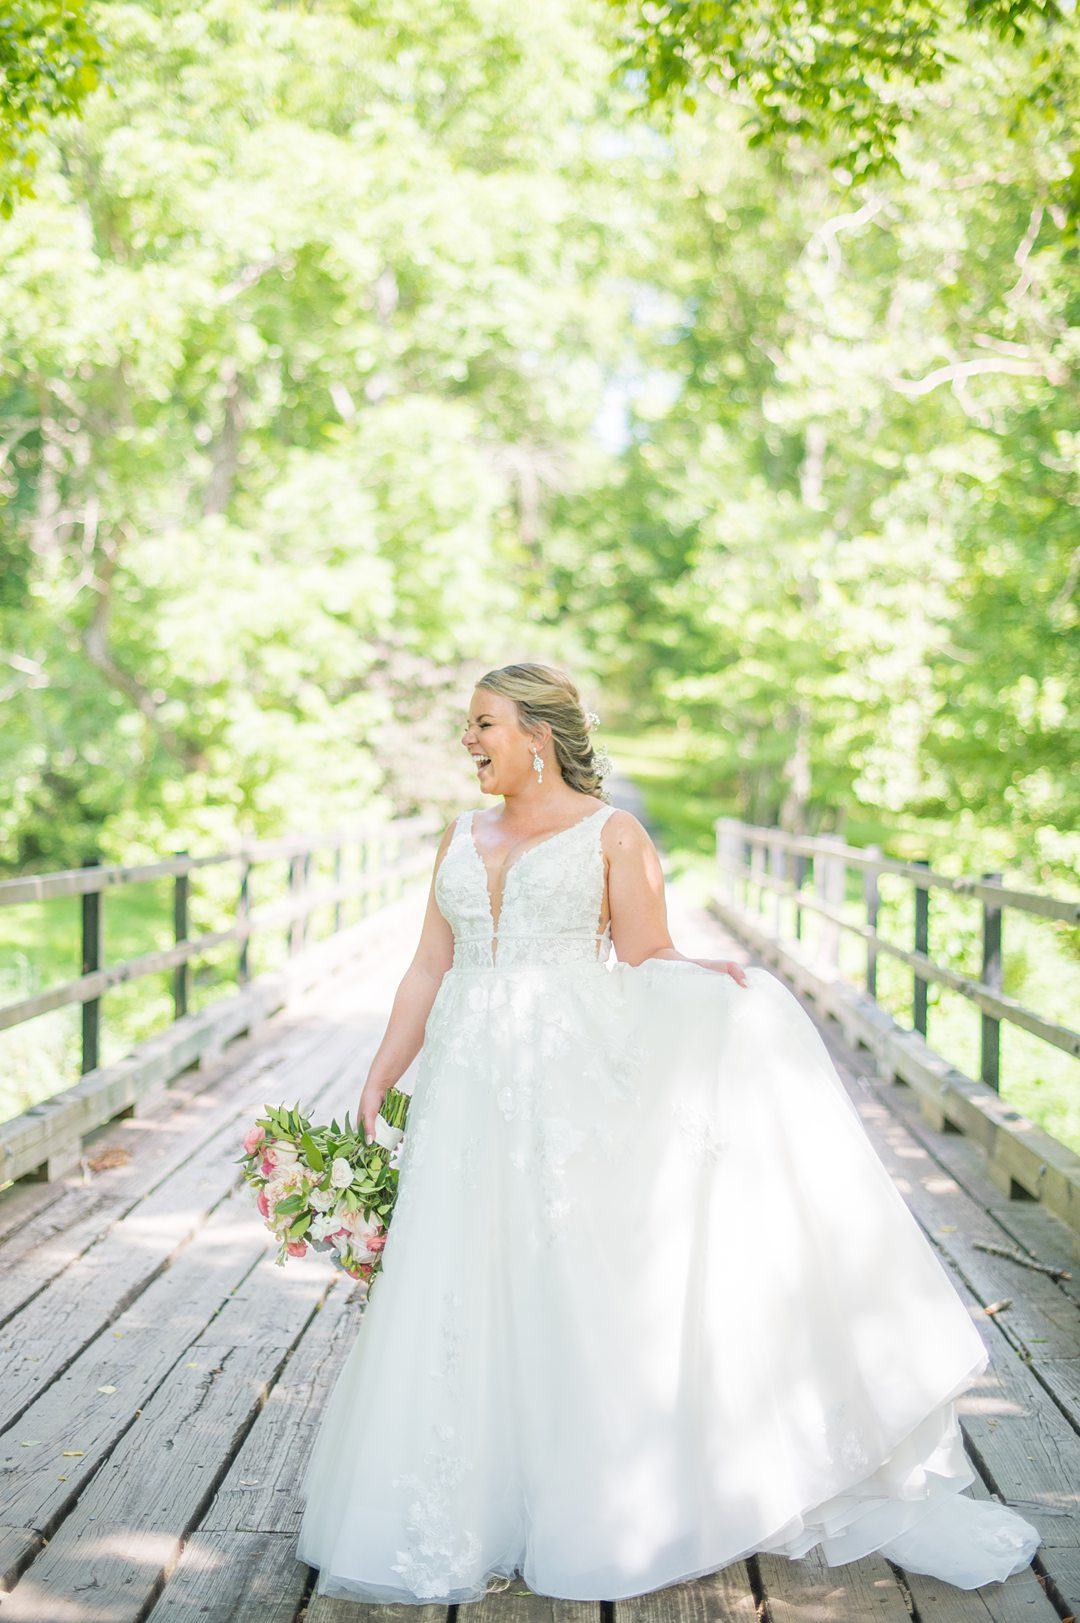 Bride in a tulle skirt and deep v gown with a summer bouquet with peonies by Mikkel Paige Photography. The wedding was at The Lodge at Mount Ida Farm in Charlottesville, VA.